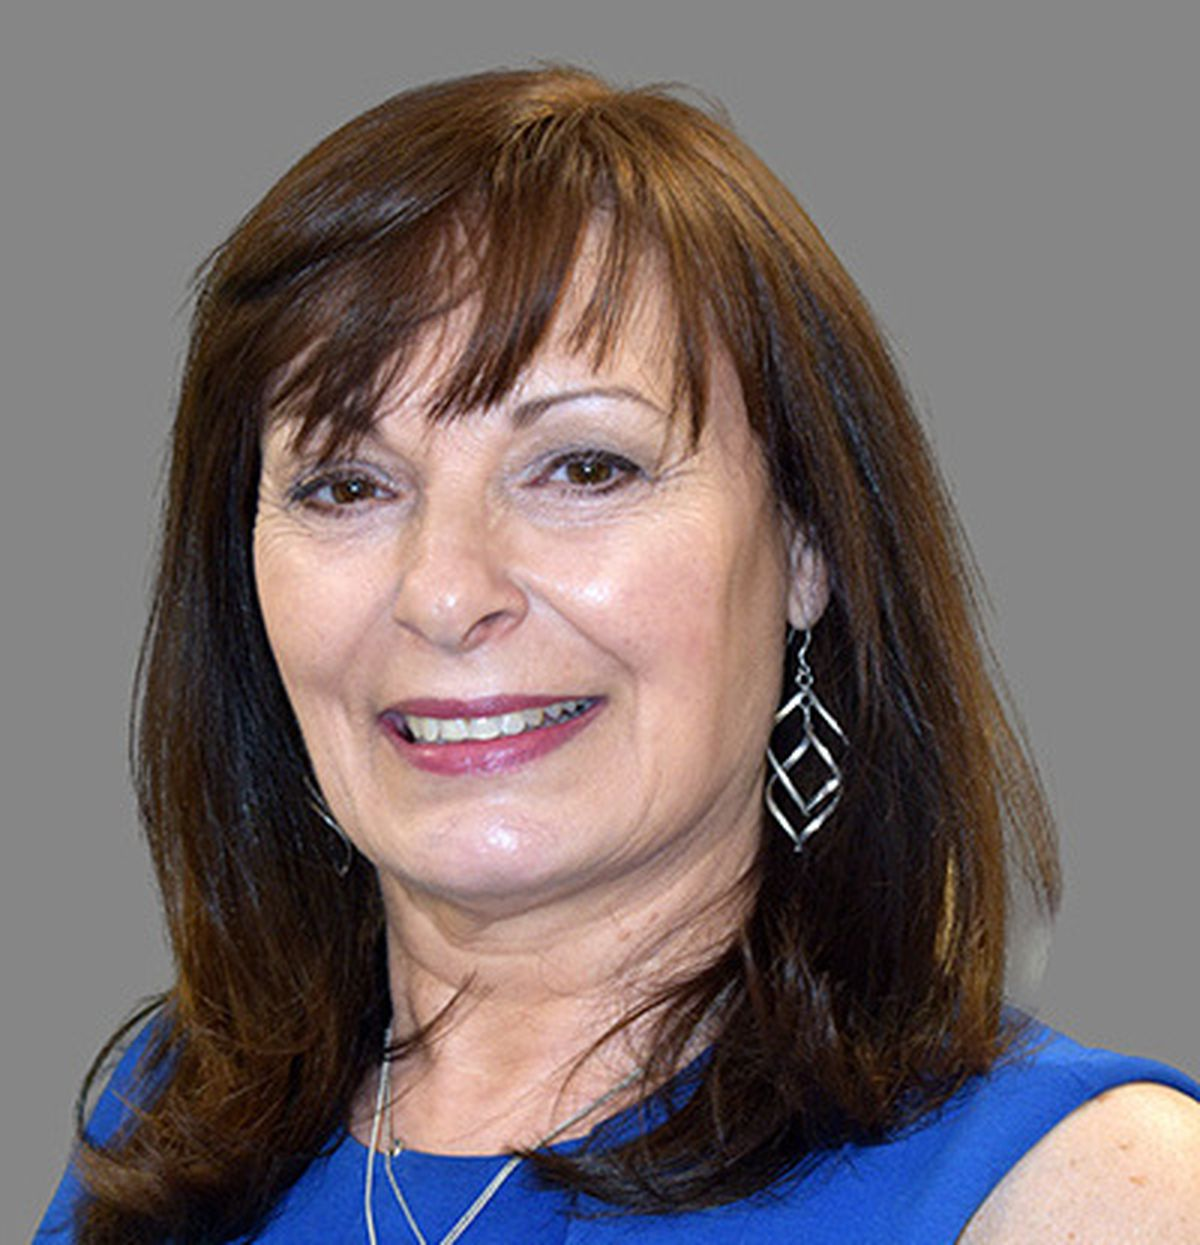 Councillor Maria Crompton has been interim leader since Yvonne Davies stood down in 2020